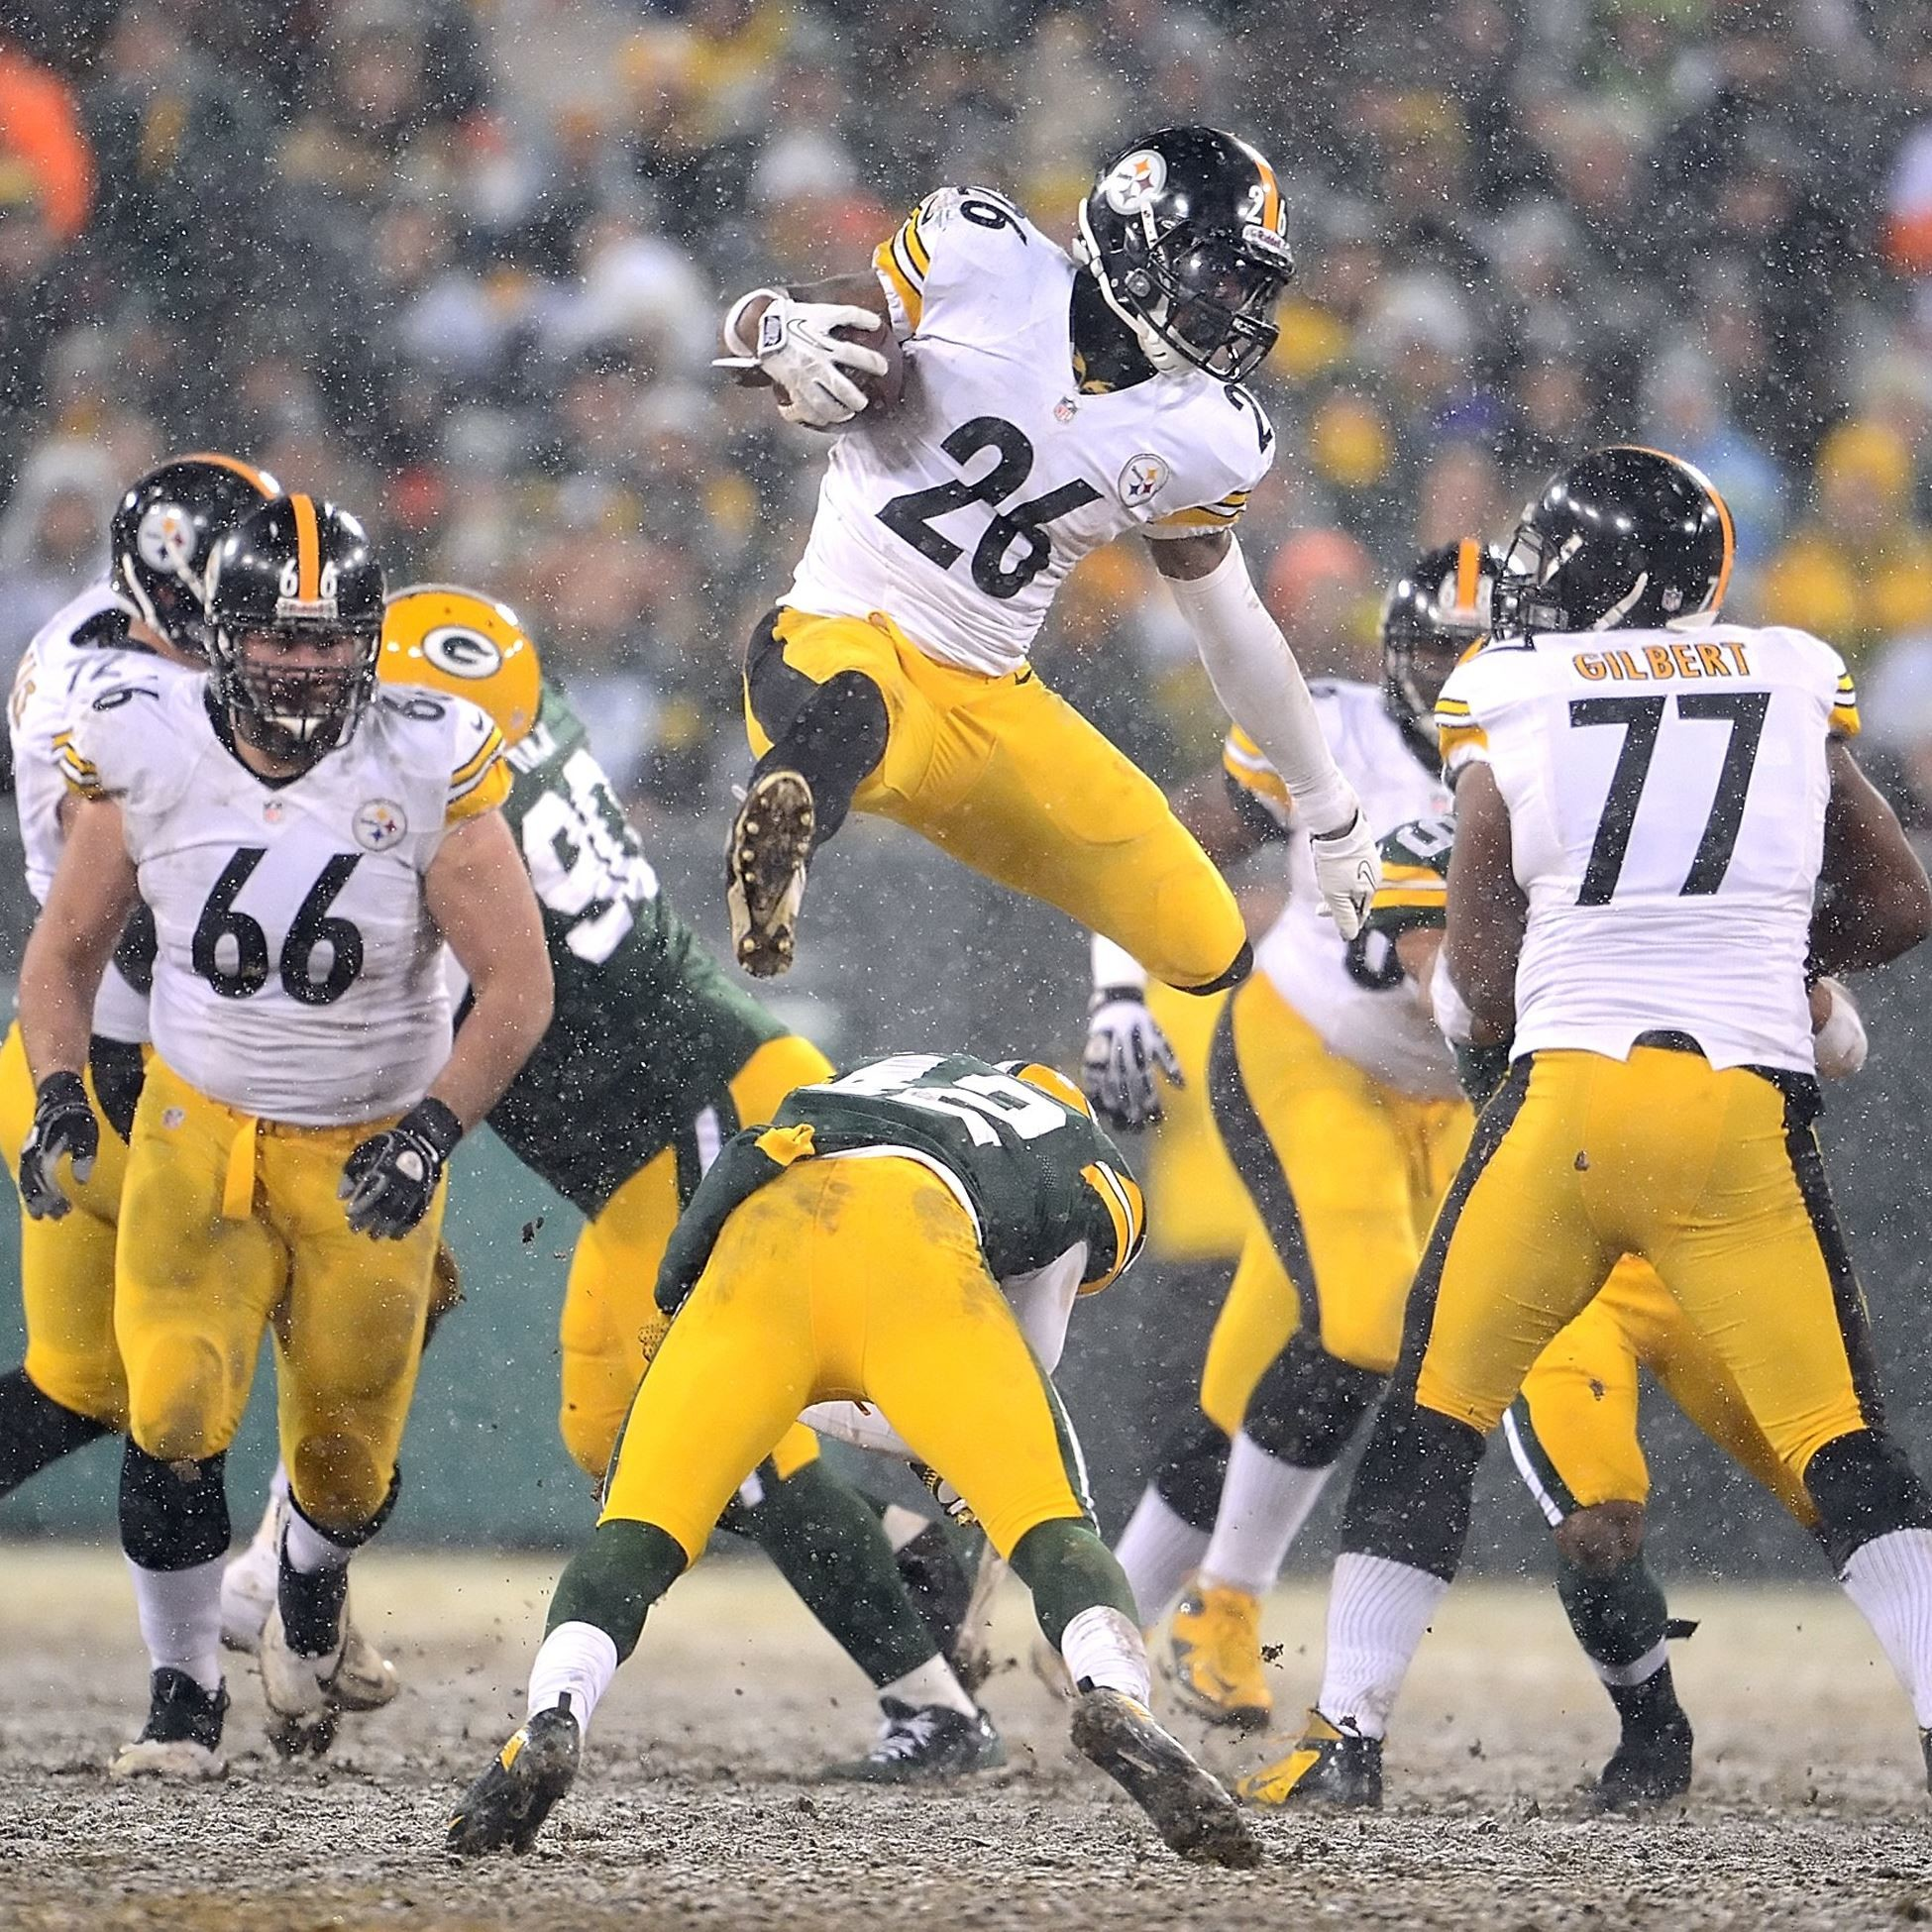 Steelers Le'Veon Bell leaps over Packers Morgan Burnett for first down  yardage in the third quarter at Lambeau Field.